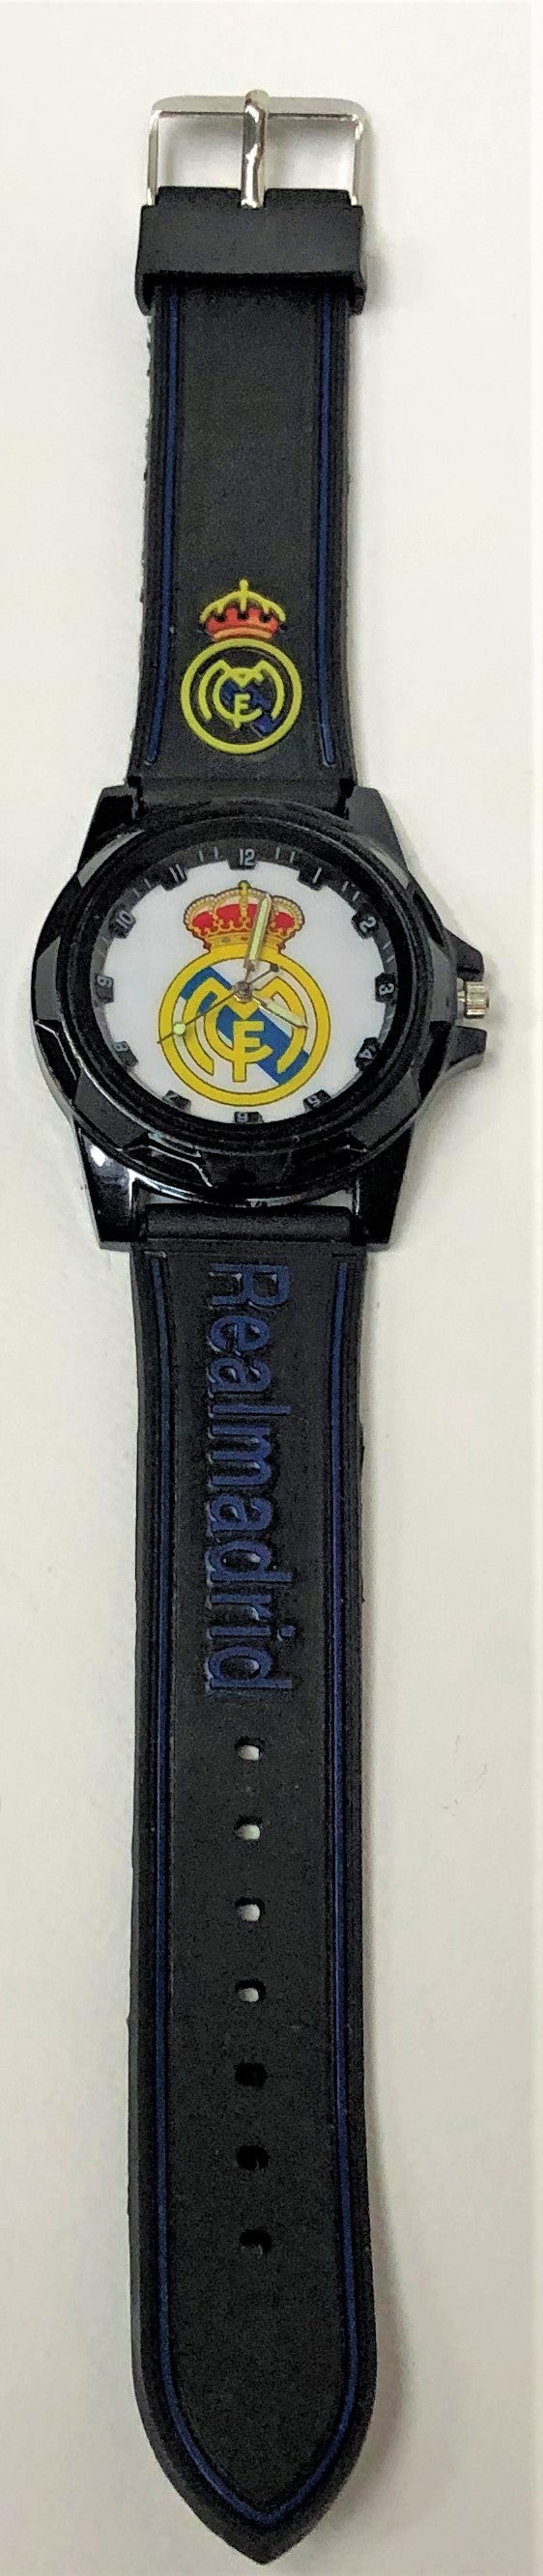 Kids Real Madrid Wrist Watch